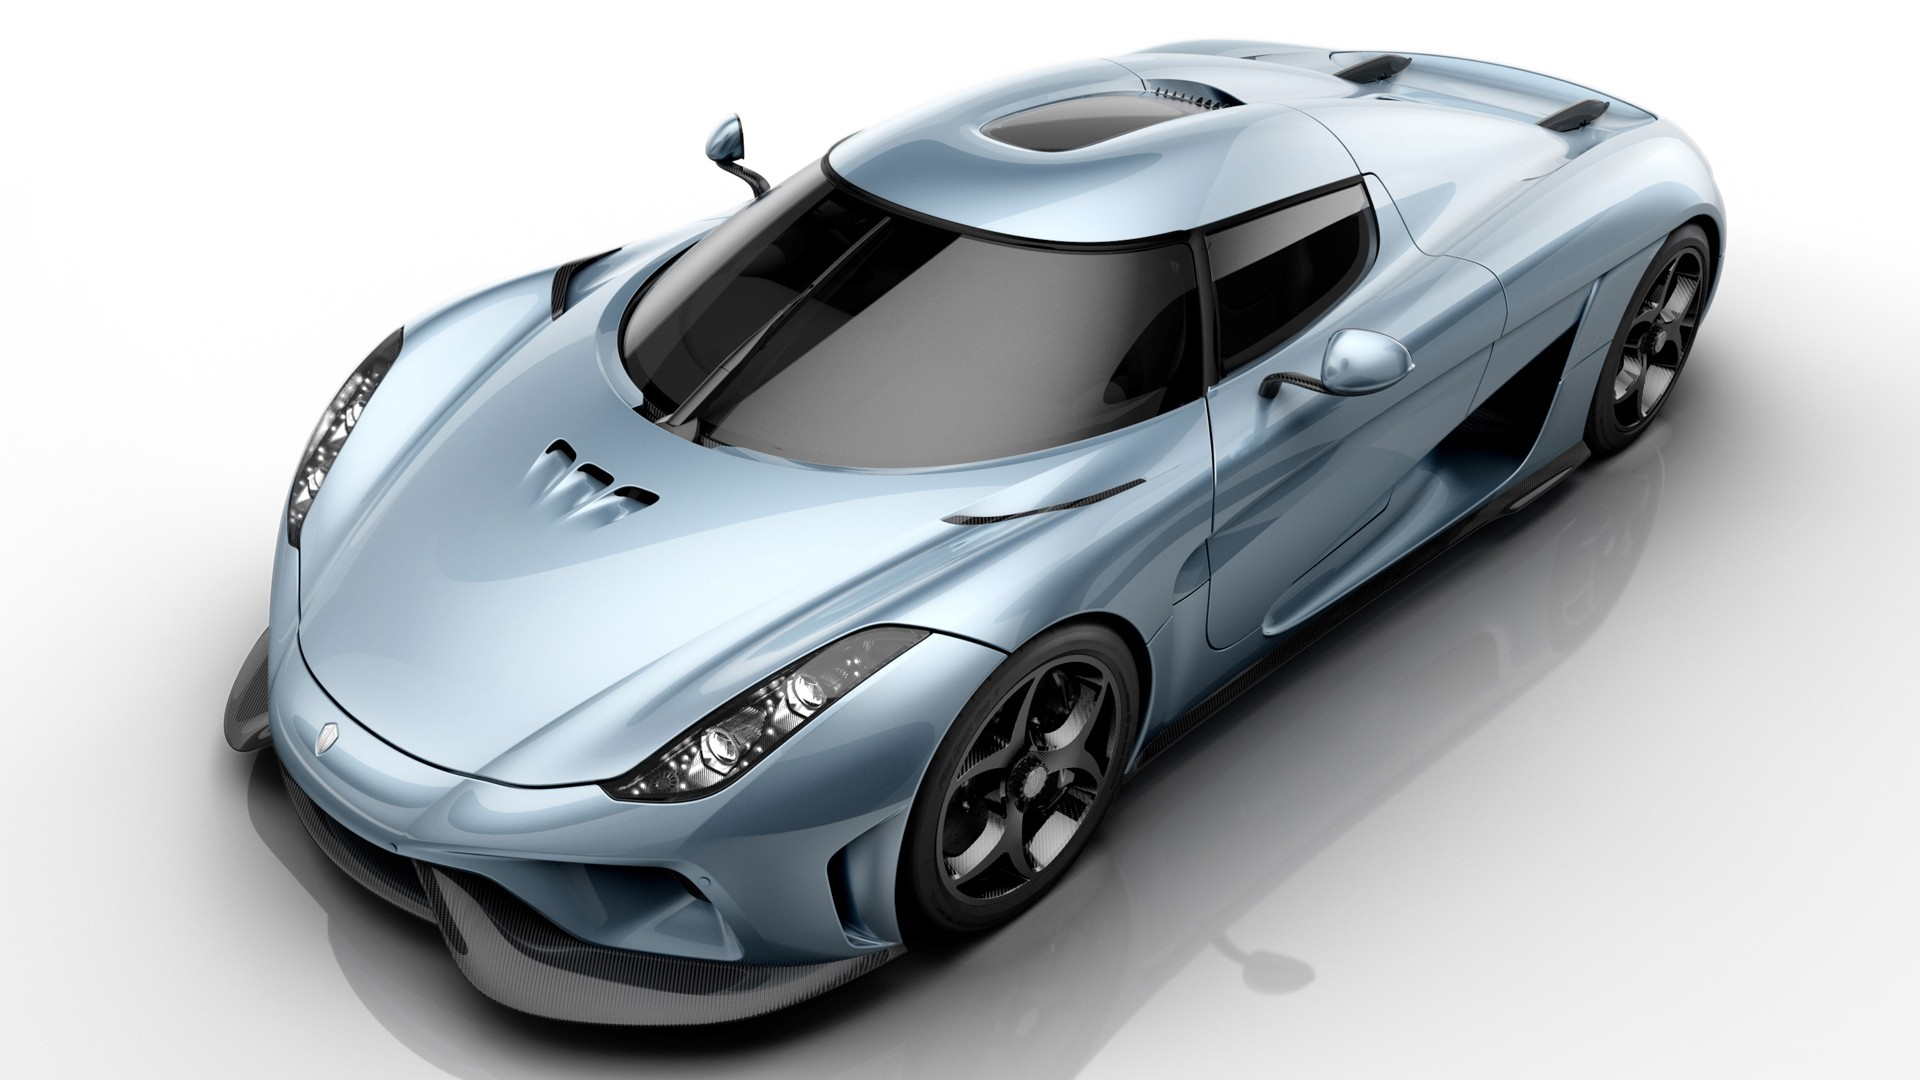 General 1920x1080 Koenigsegg Regera car simple background vehicle reflection